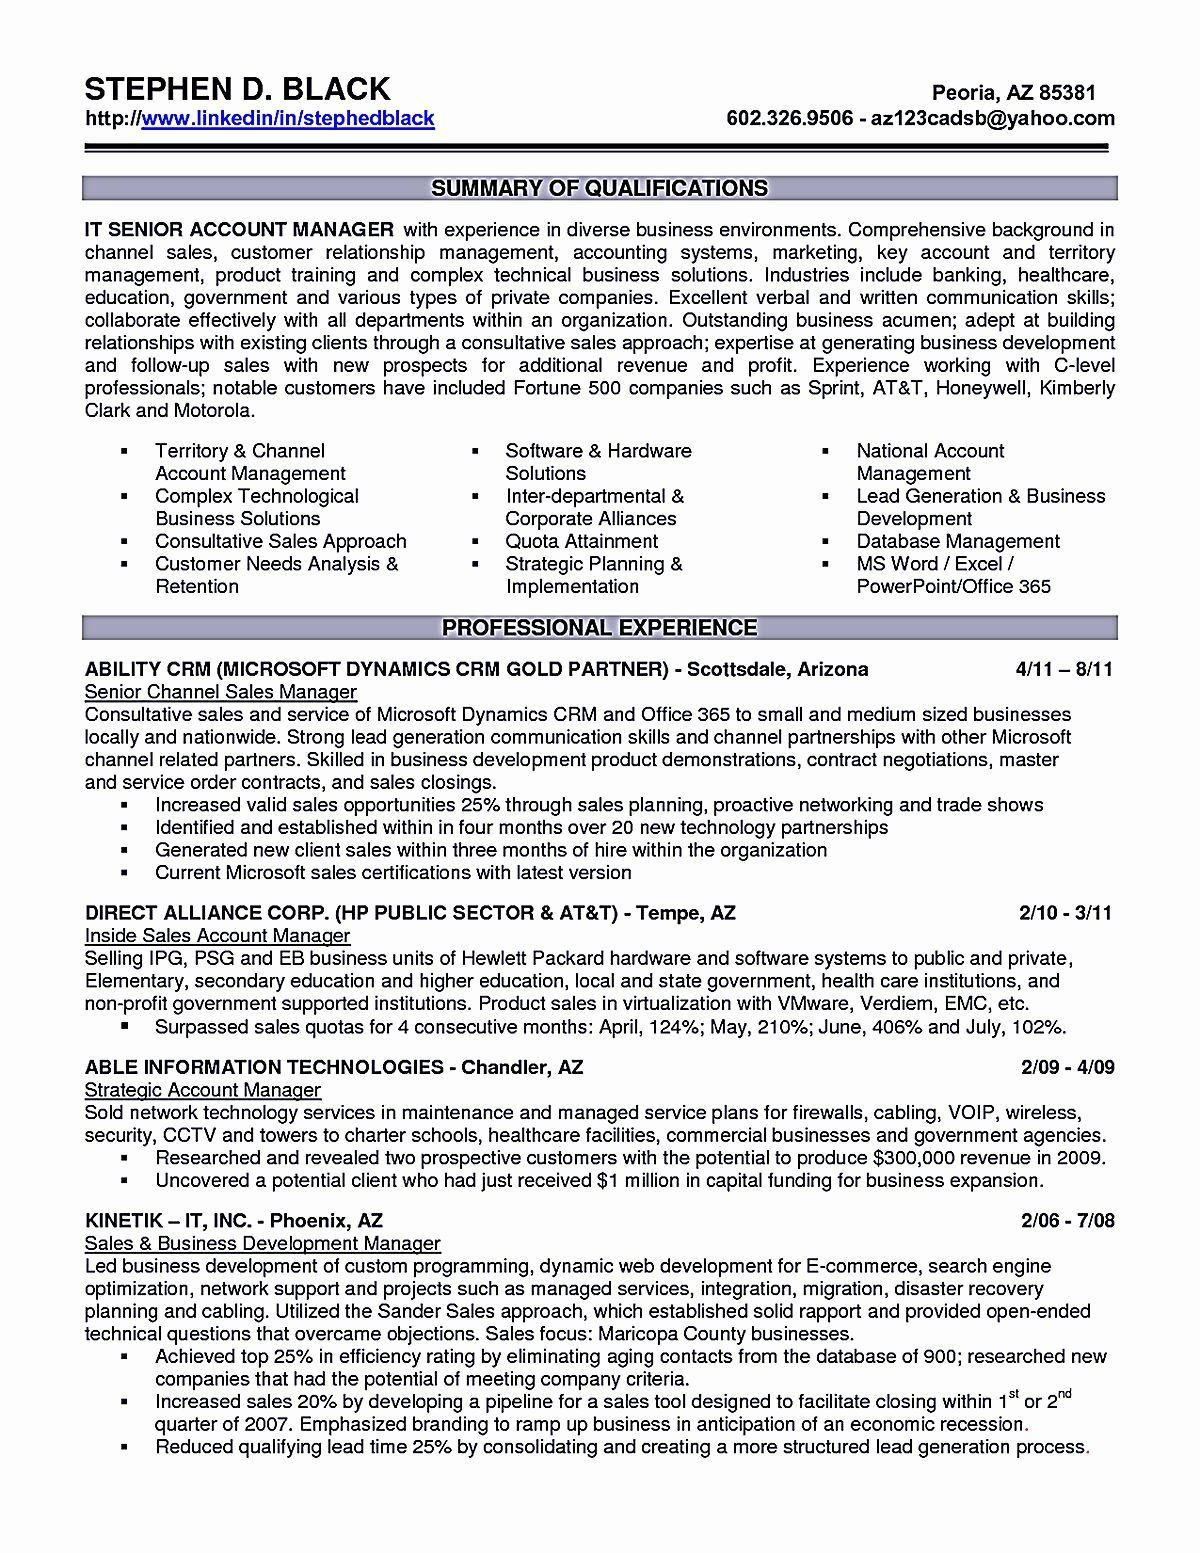 Account Executive Resume Examples Elegant Account Executive Resume Is Like Your Weapon To The Job You Resume Examples Executive Resume Resume Template Examples